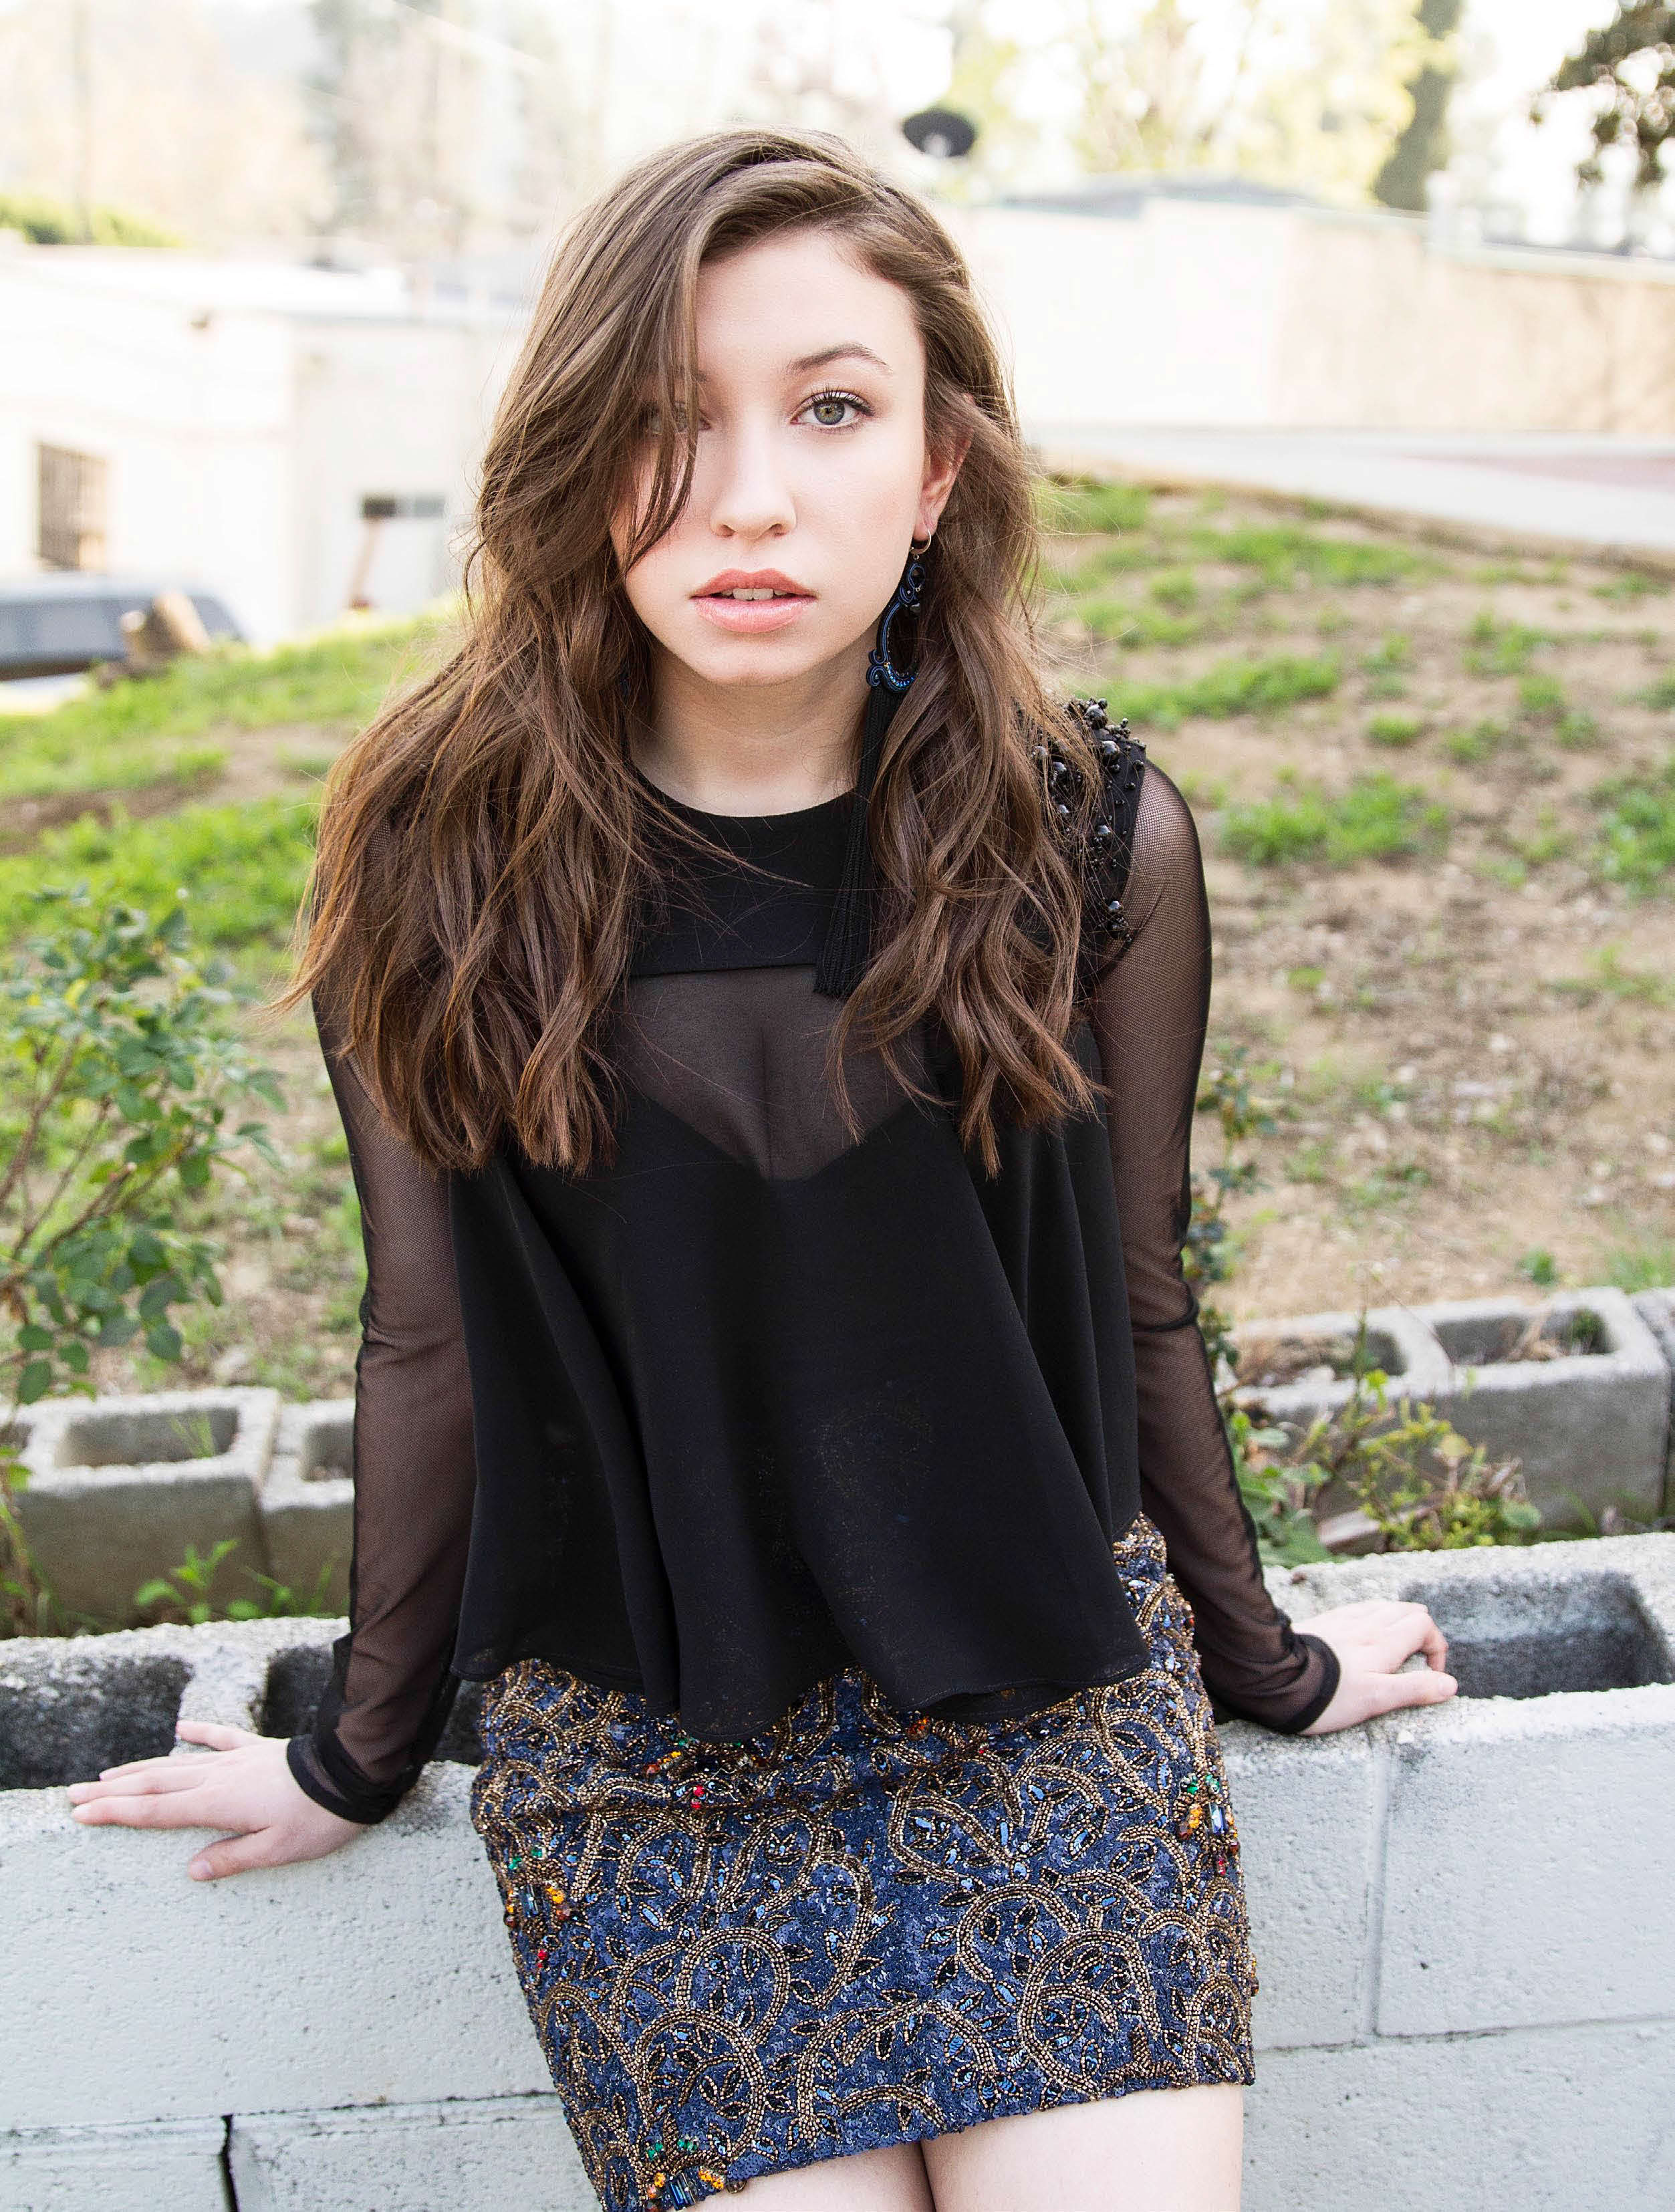 Katelyn Nacon sexy hairs (2)